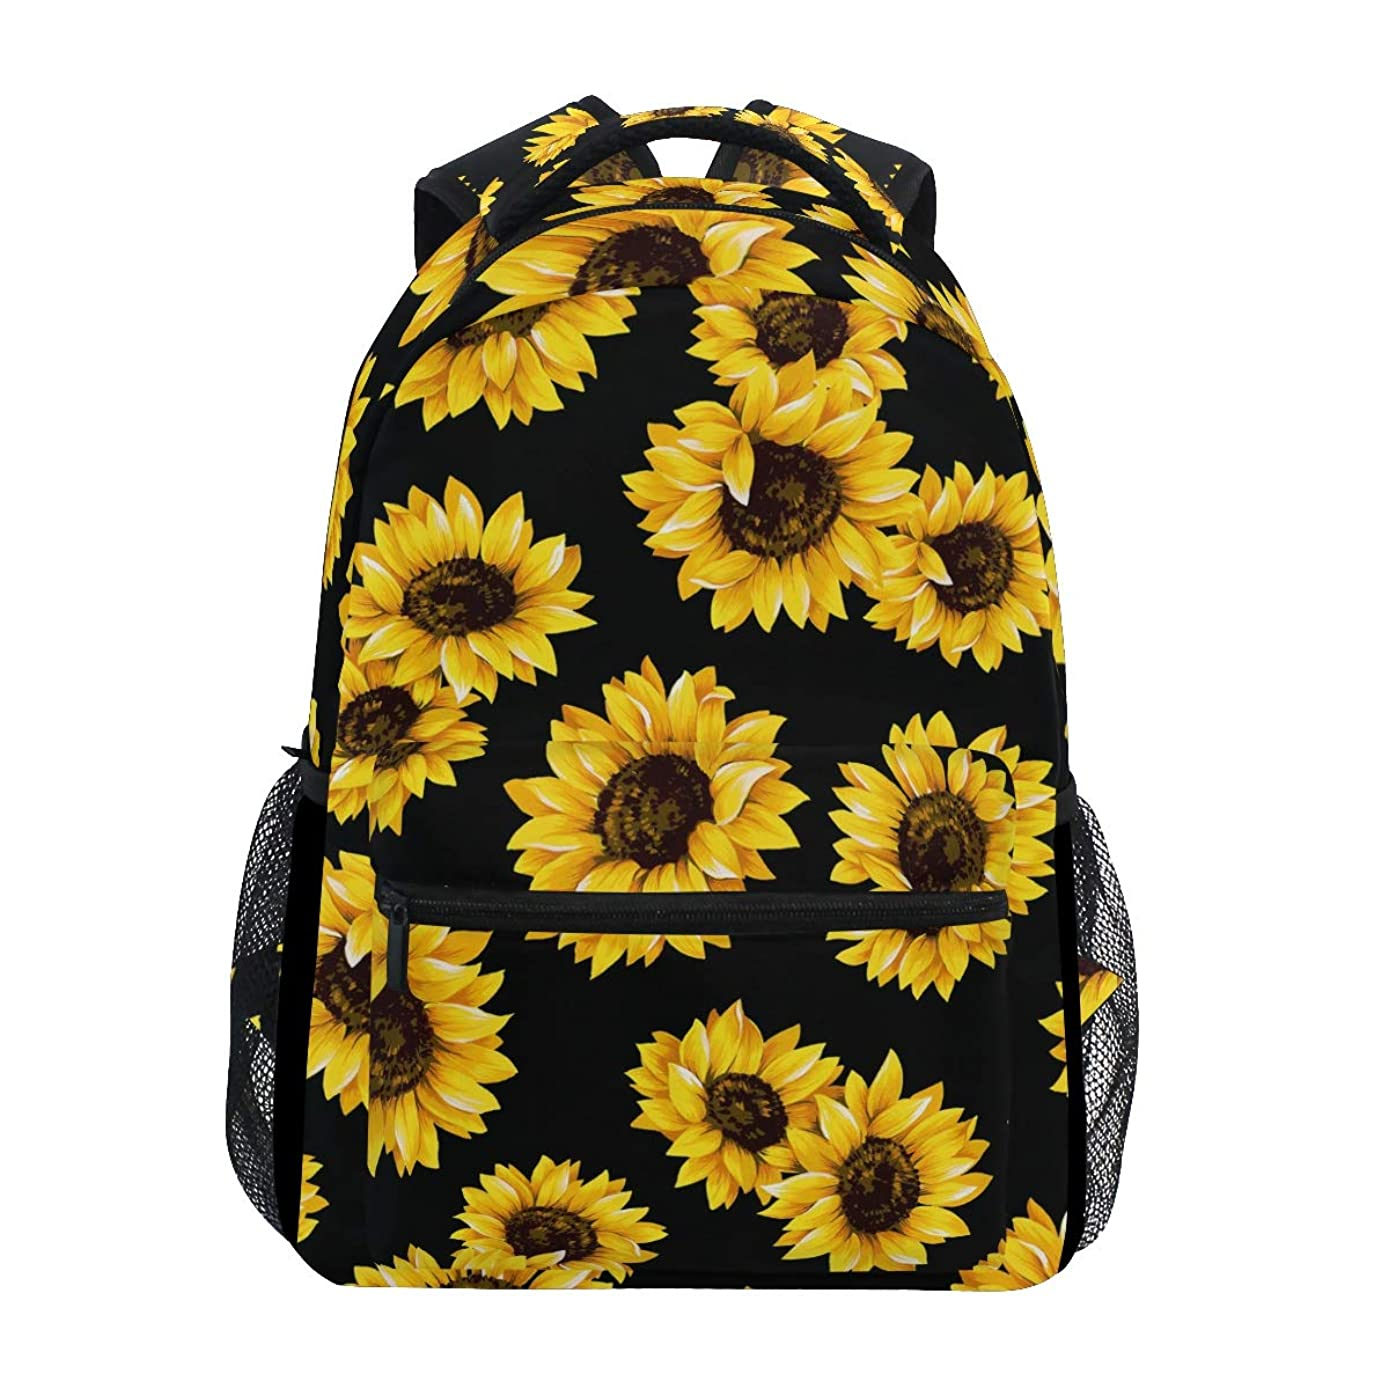 Backpack Yellow Blooming Sunflowers Black Canvas School Bags Laptop Daypack